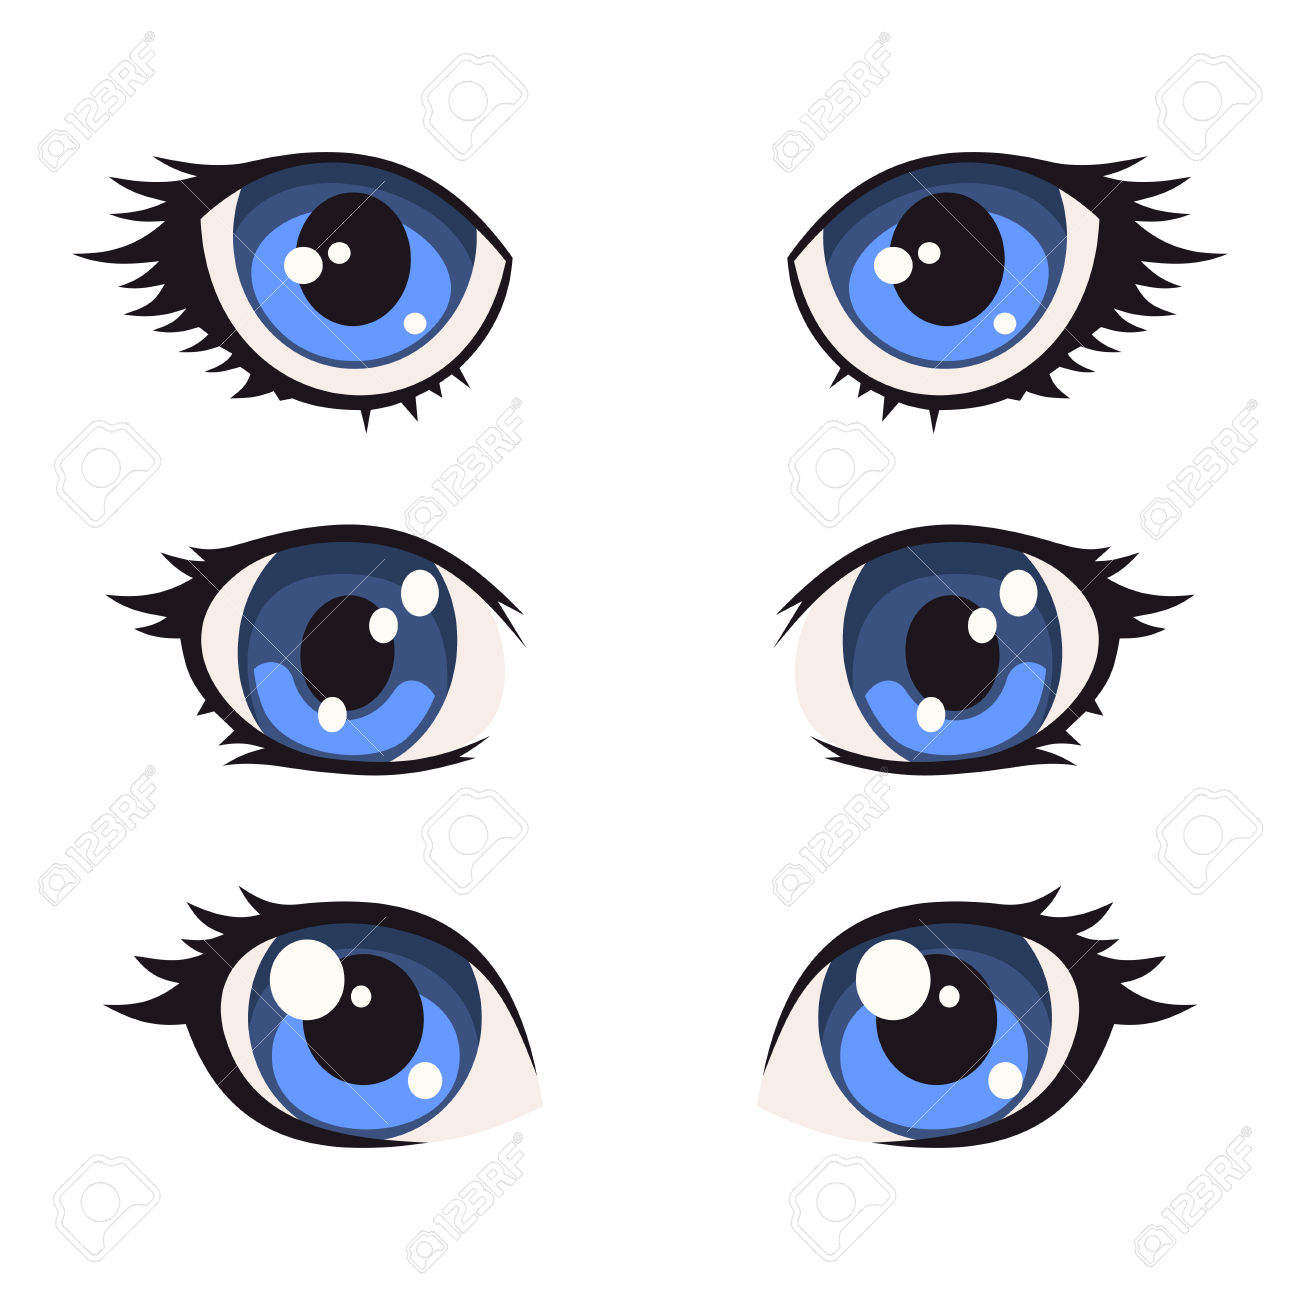 1300x1300 Blue Cartoon Anime Eyes Set. Vector Illustration Royalty Free